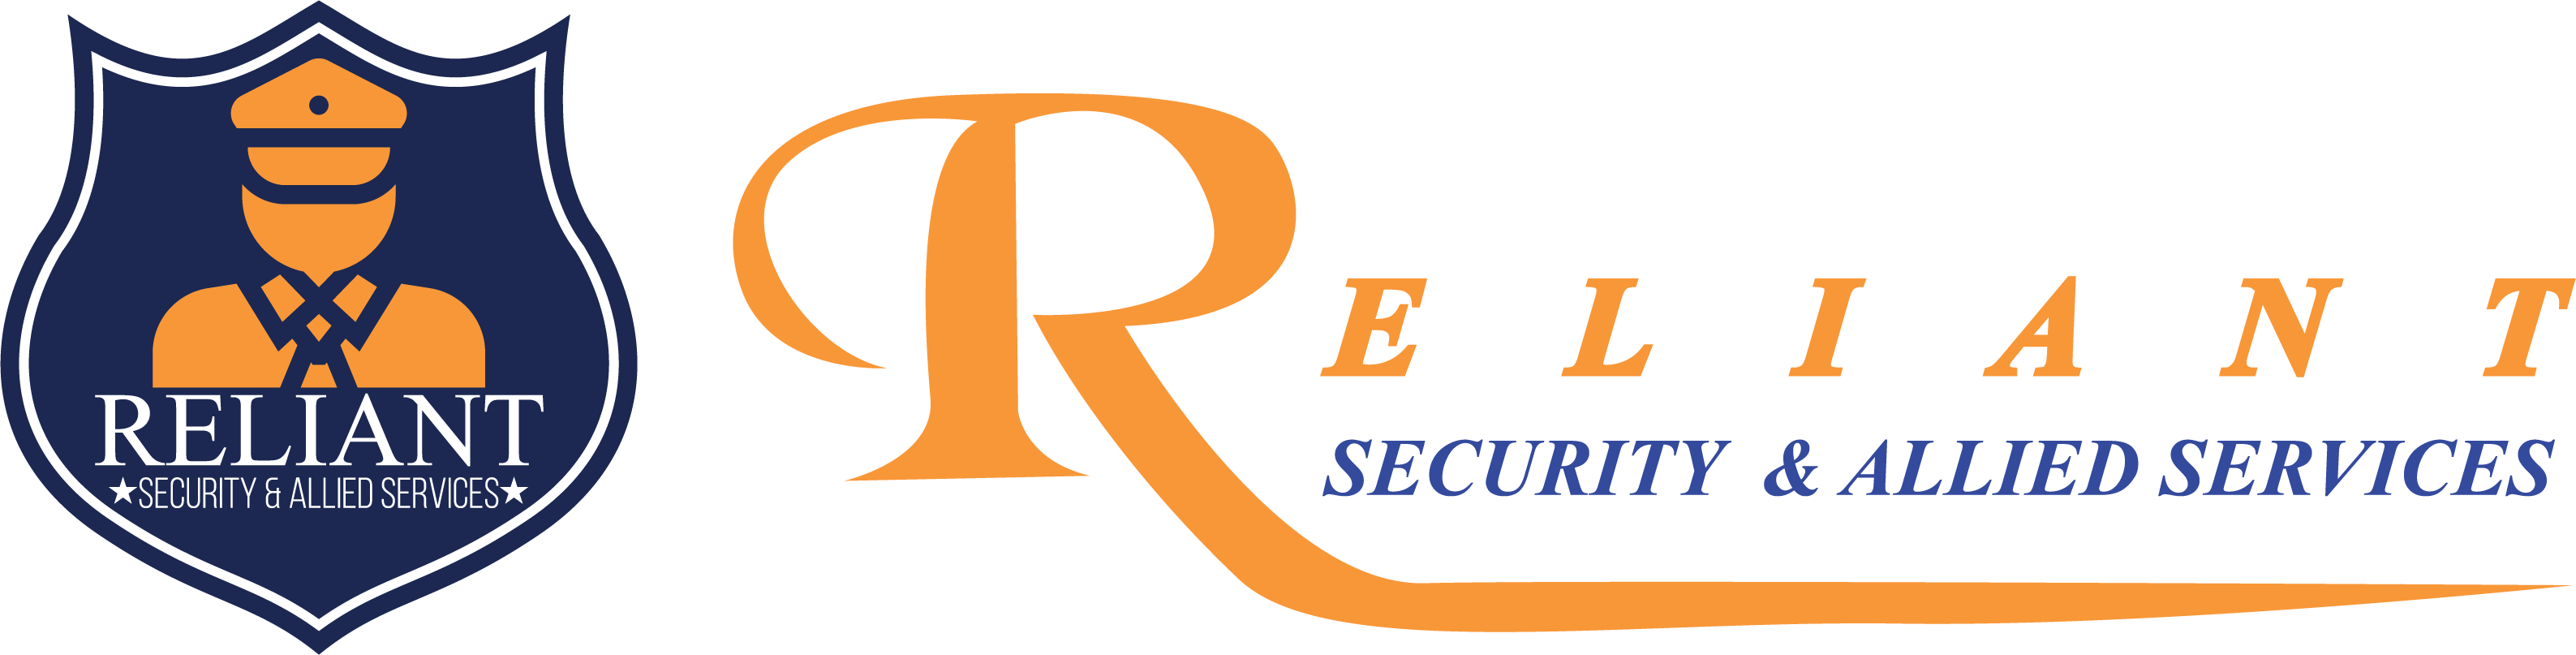 Reliantsecurity